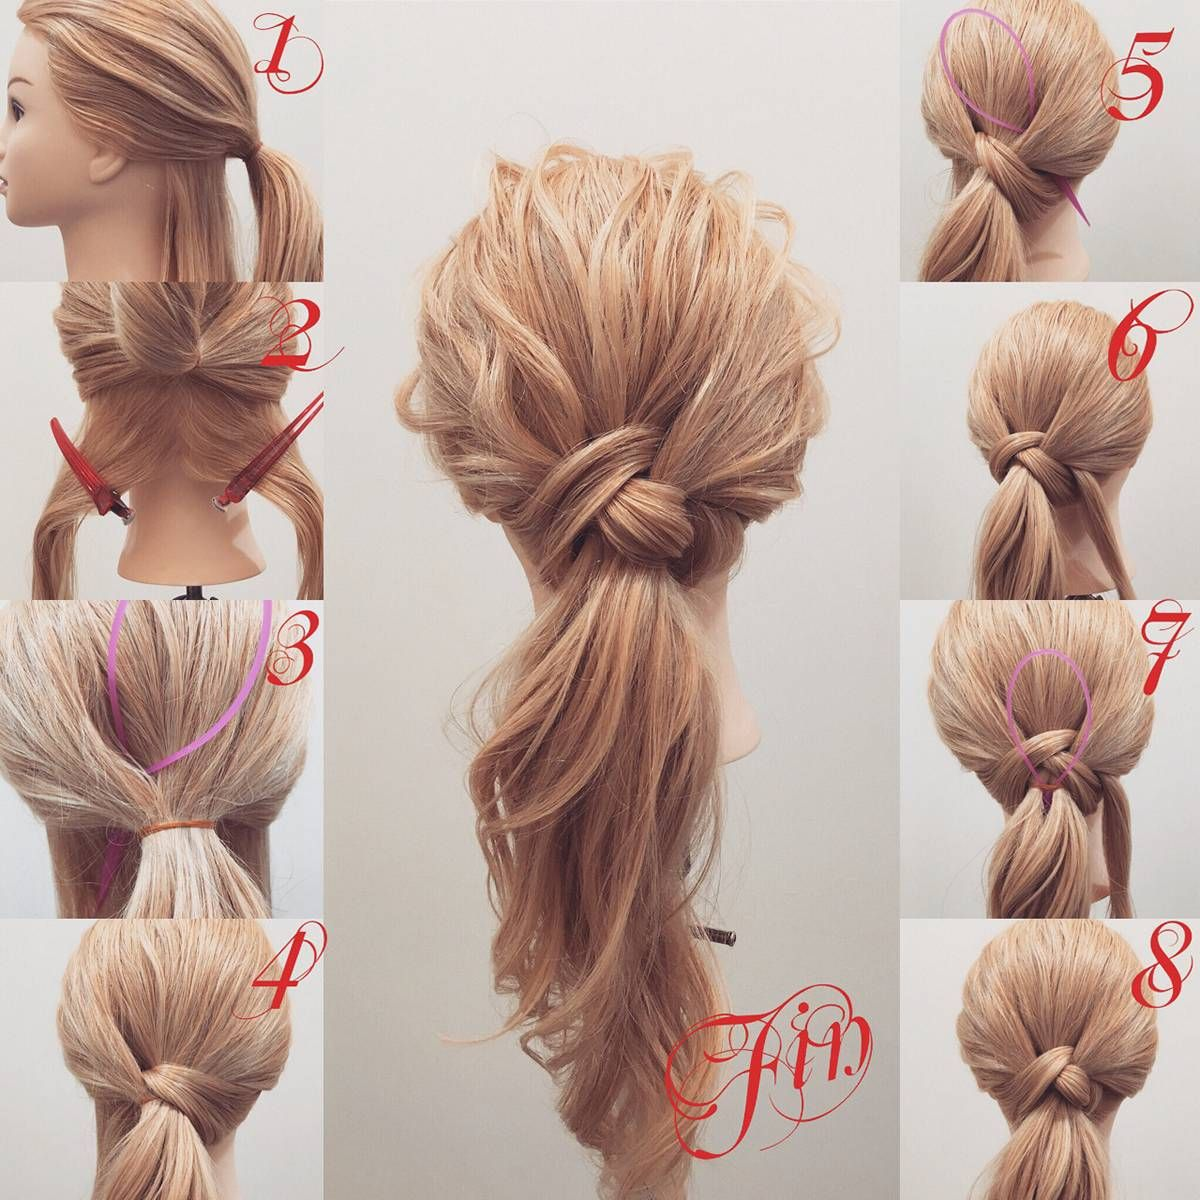 Hairstyles Diy And Tutorial For All Hair Lengths 116 in